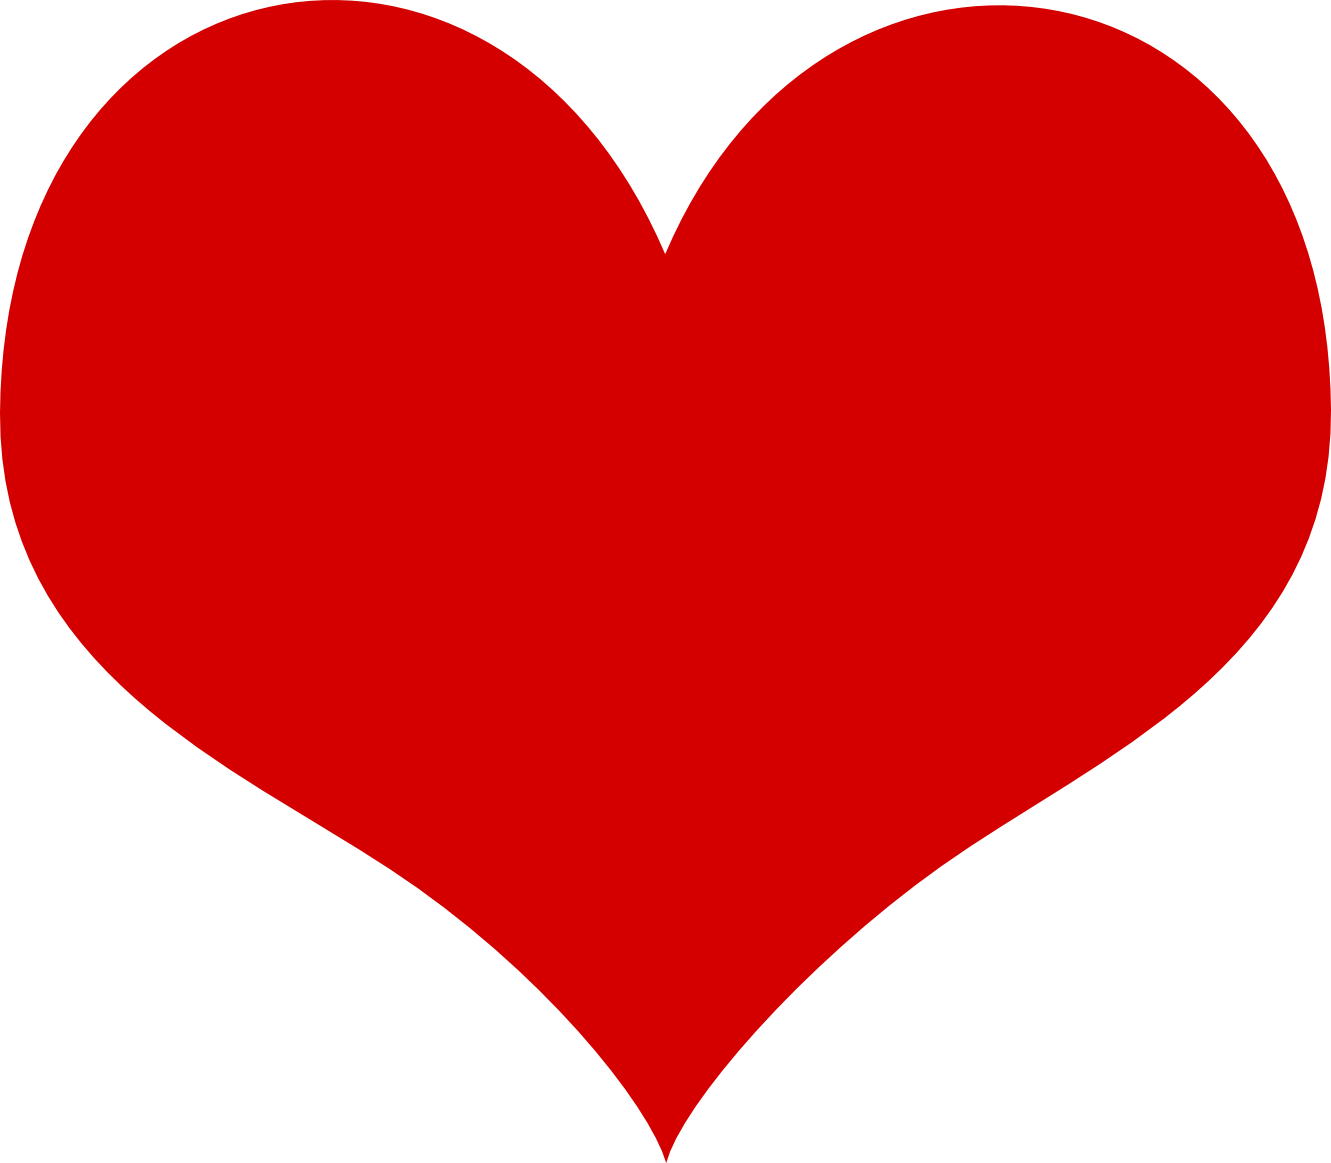 Clipart Best Heart Png image #38774